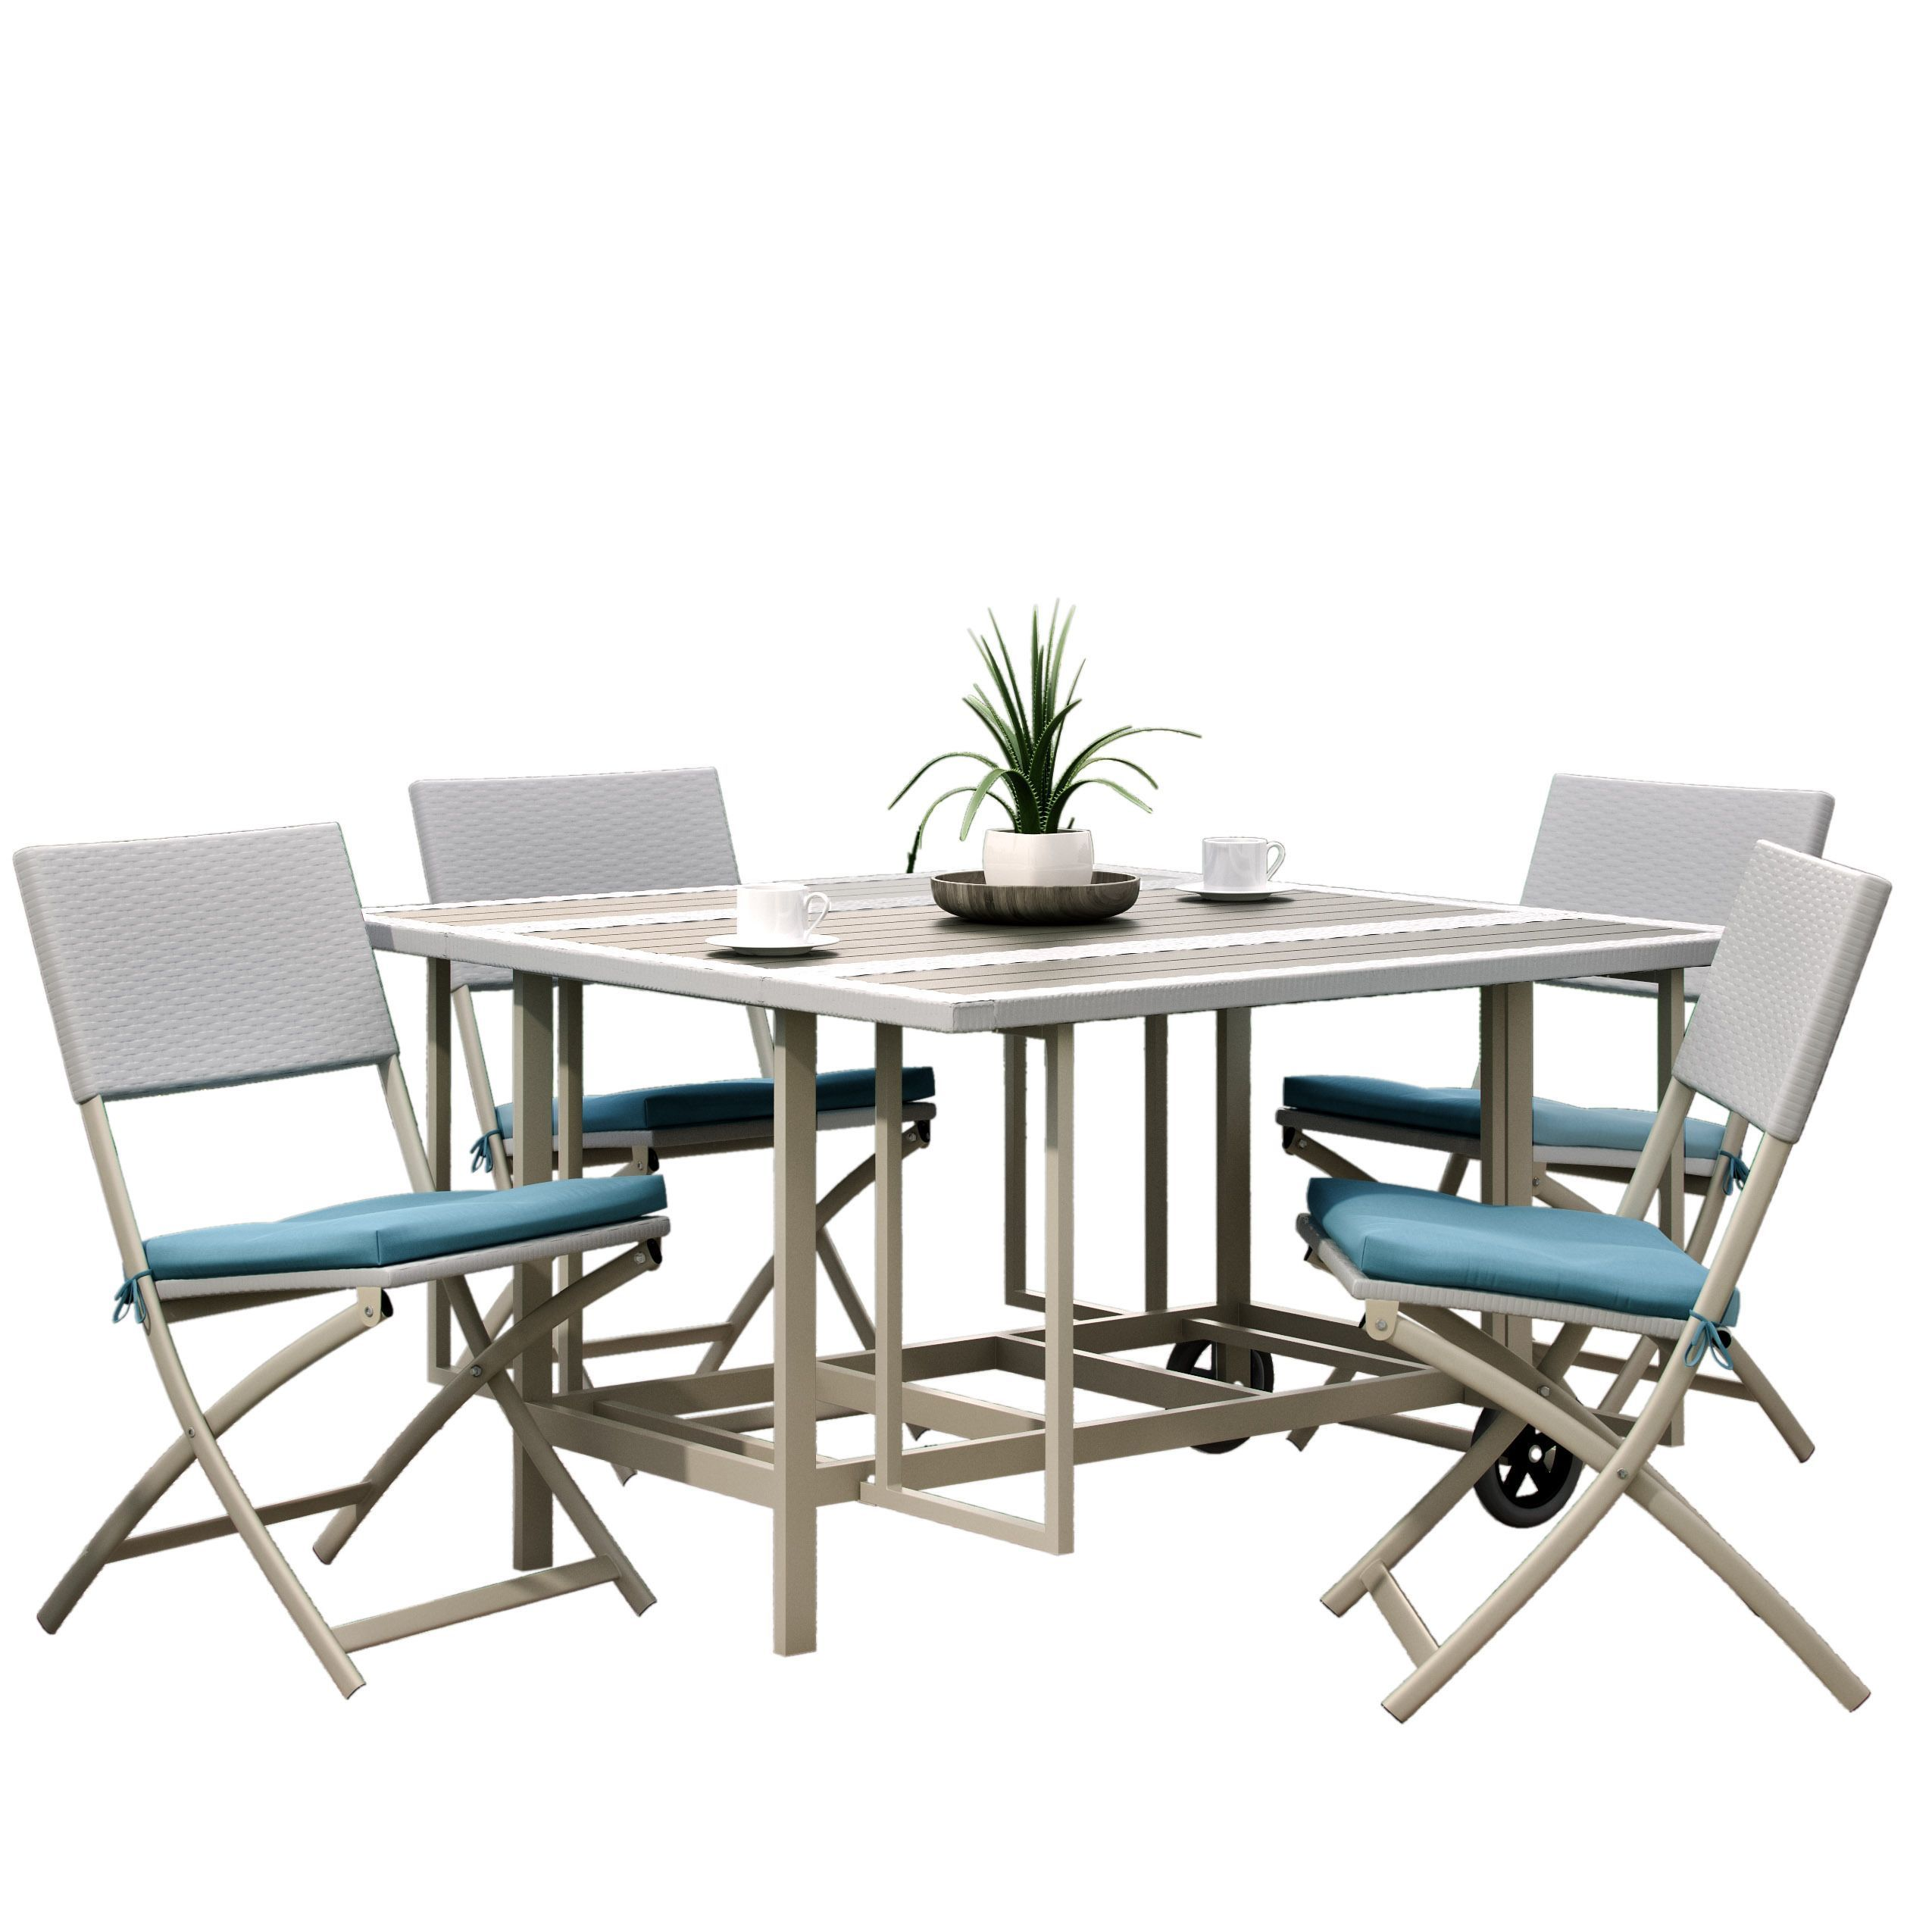 Corliving nantucket pc taupe and teal stowable folding patio dining